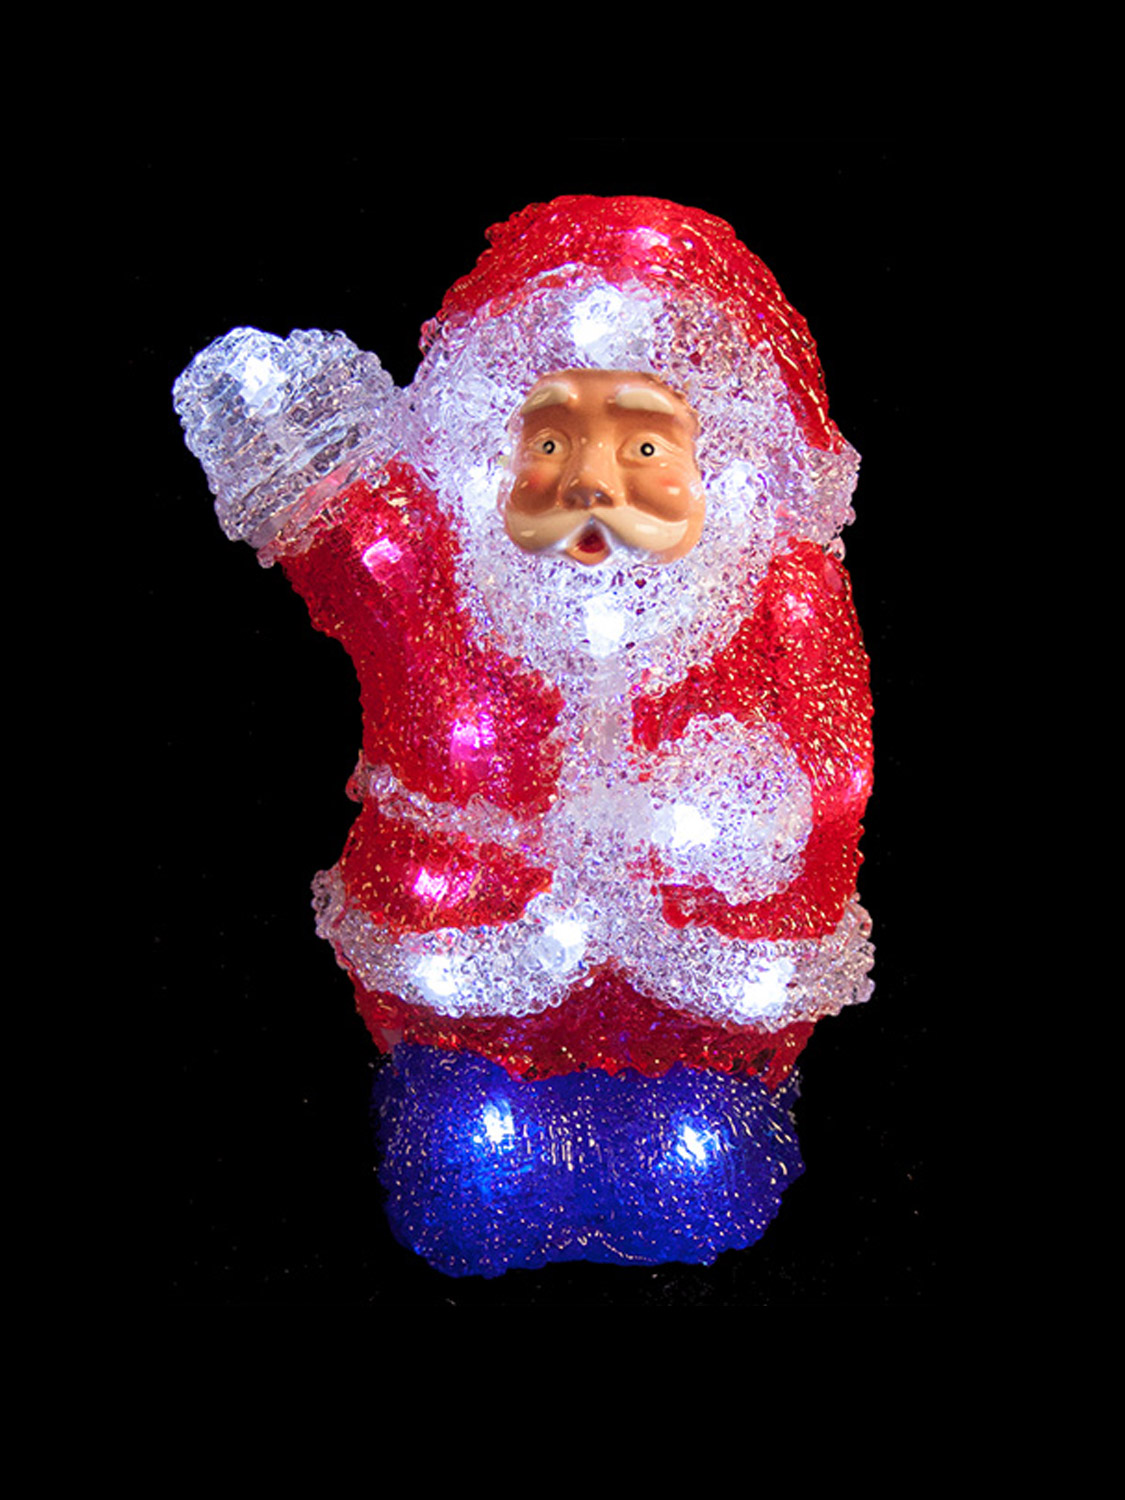 Brighten up your Christmas with these Acrylic Figures as a fantastic option  for your decorations this year! - Light Up Acrylic Santa Snowman Reindeer Christmas Outdoor Indoor